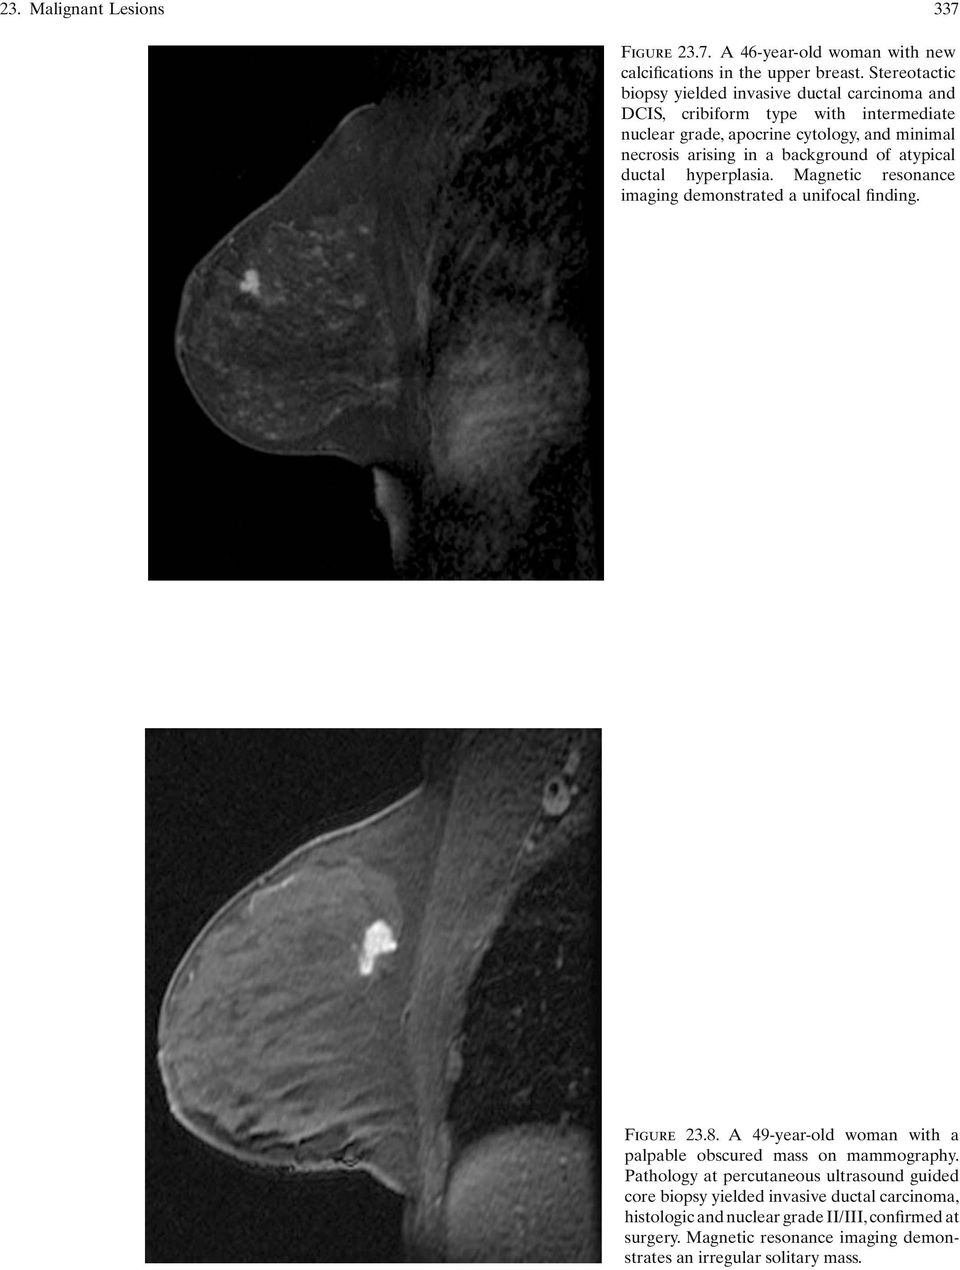 background of atypical ductal hyperplasia. Magnetic resonance imaging demonstrated a unifocal finding. Figure 23.8.